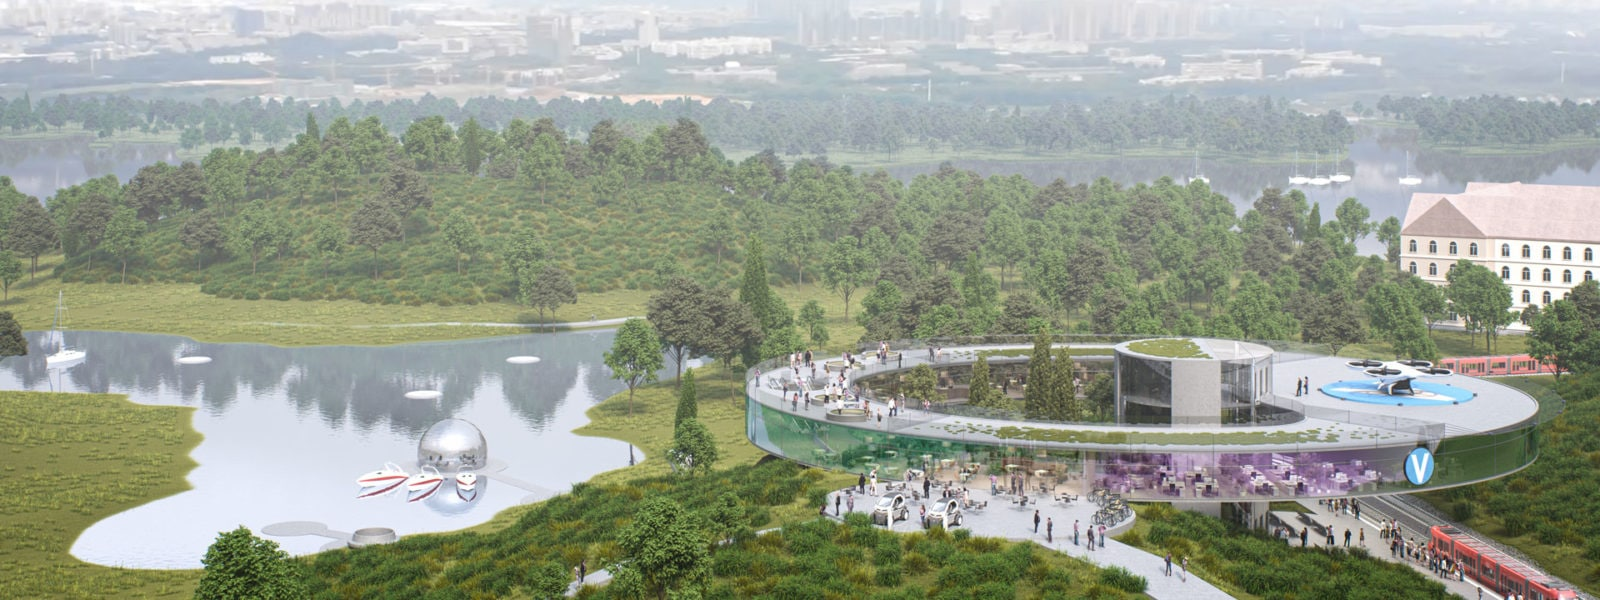 Connecting tourism opportunities - Shenzhen